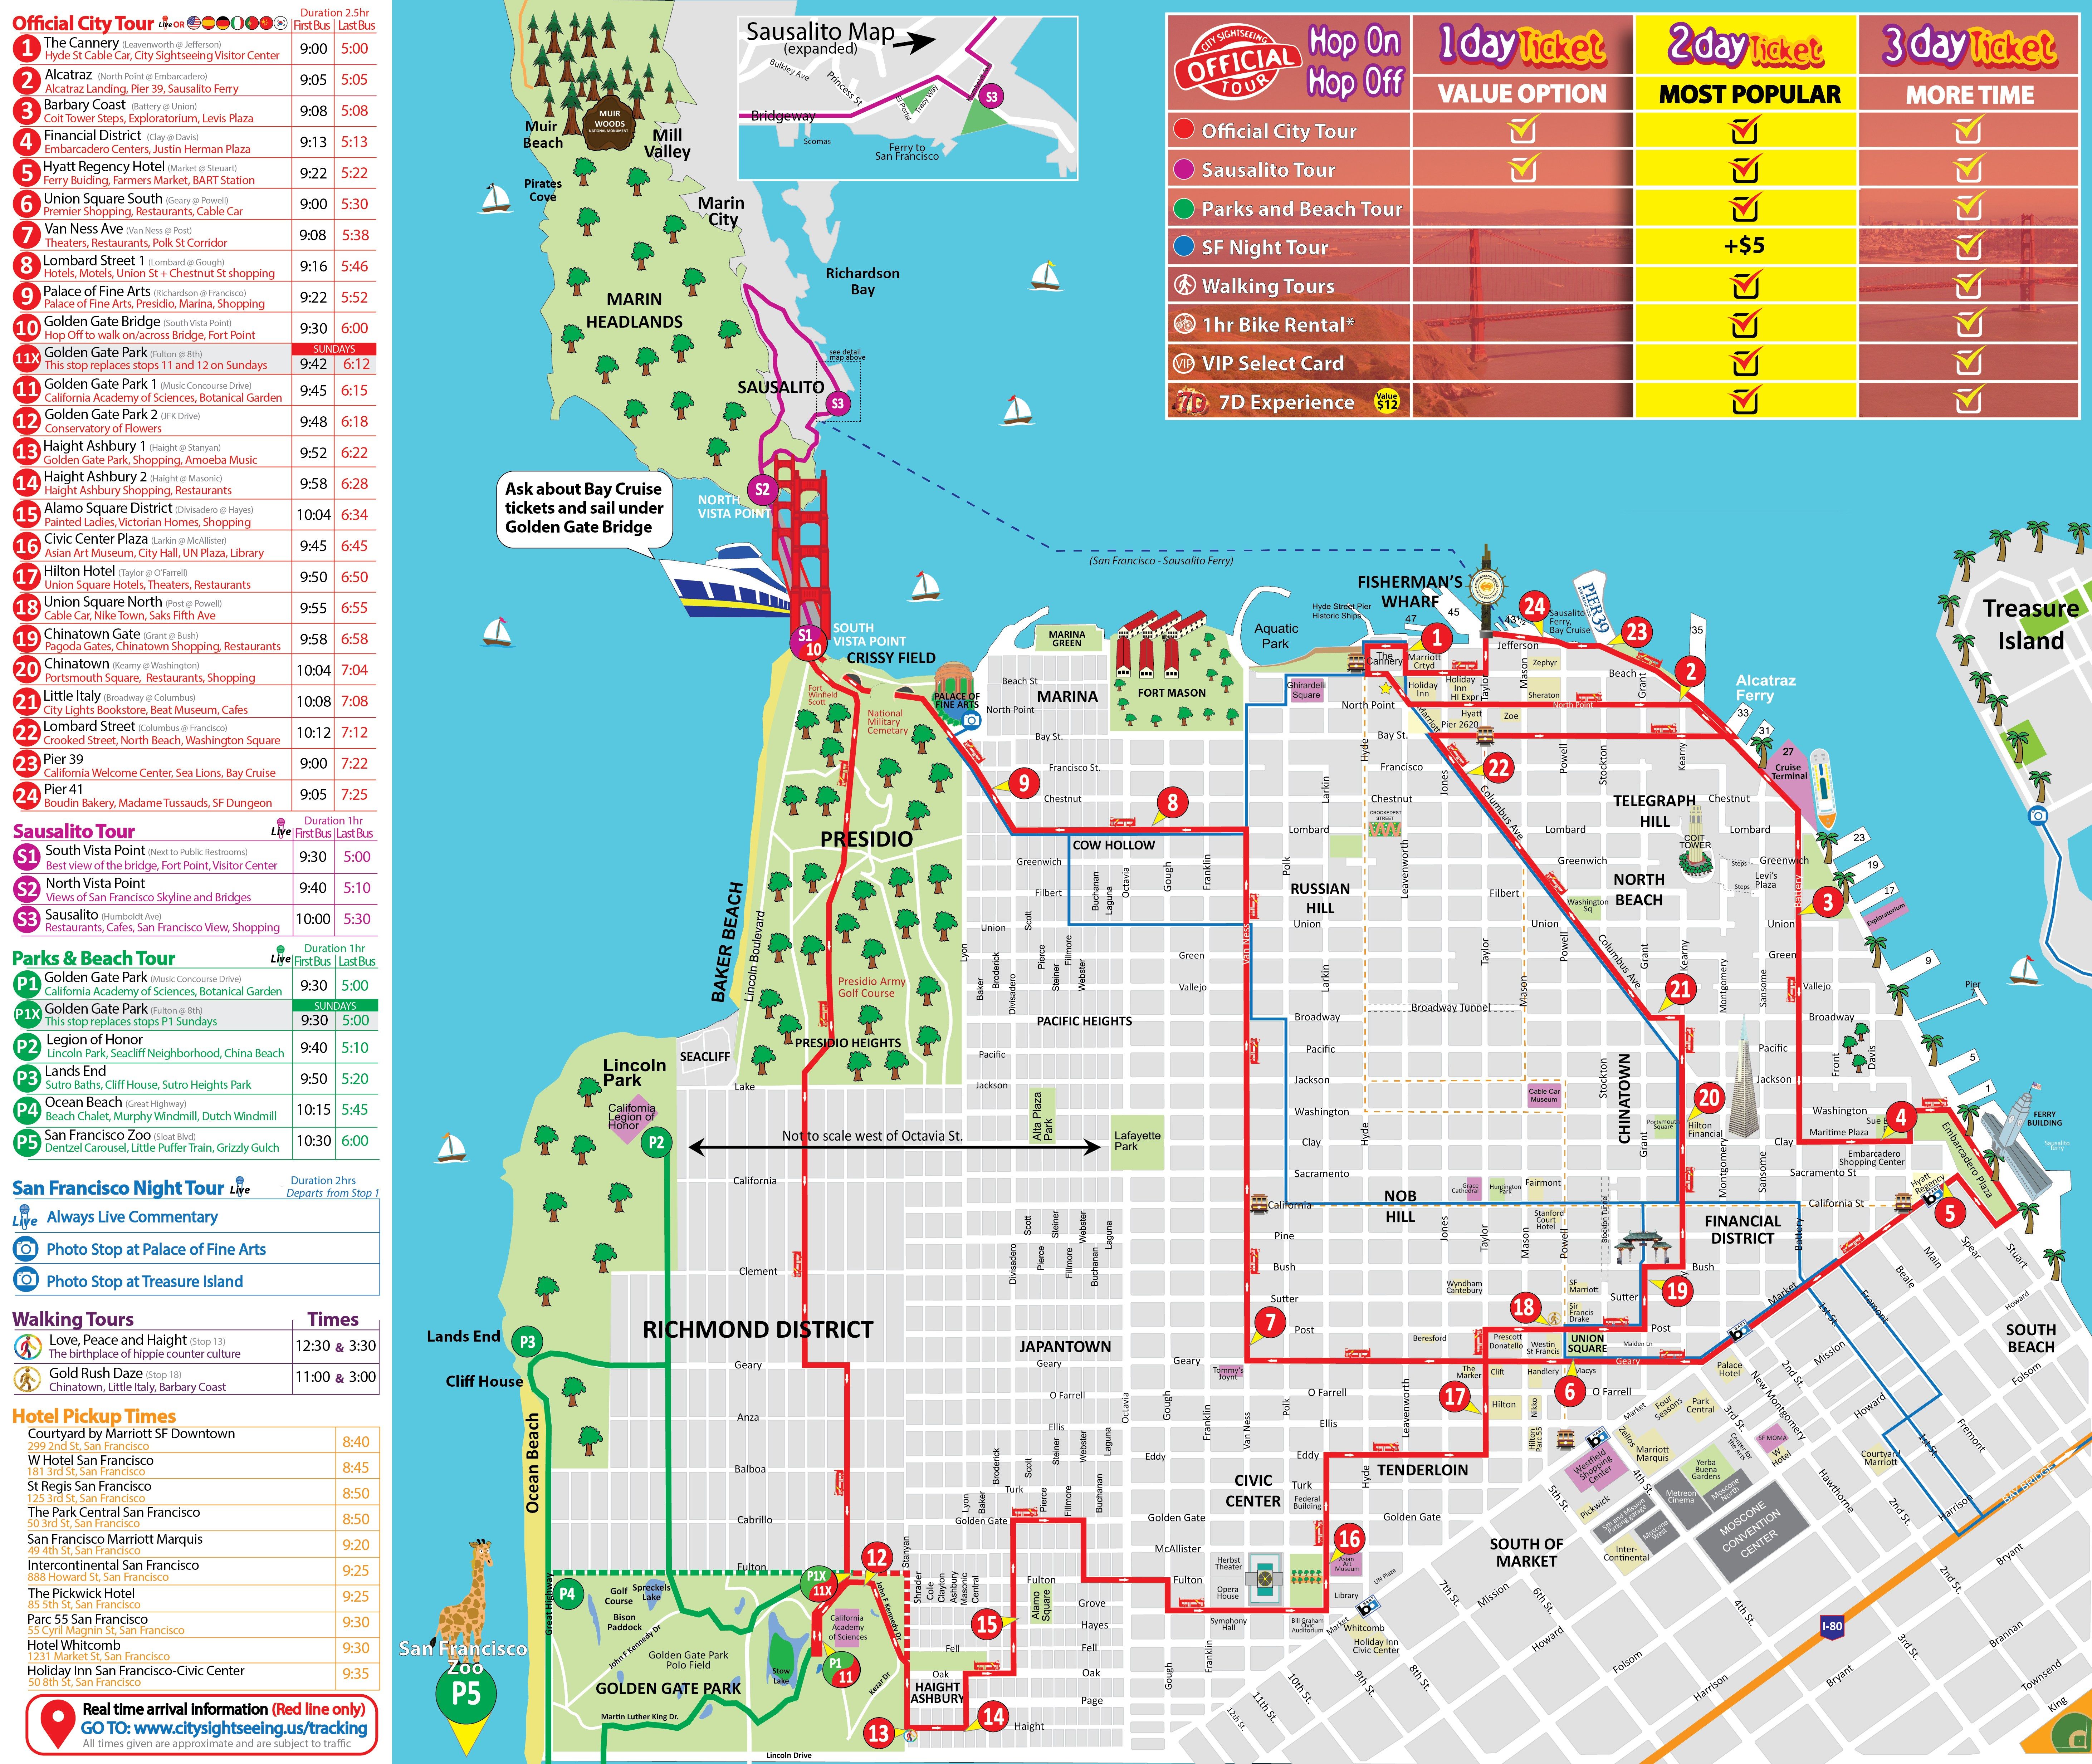 San Francisco Hop On Off Tour Map on